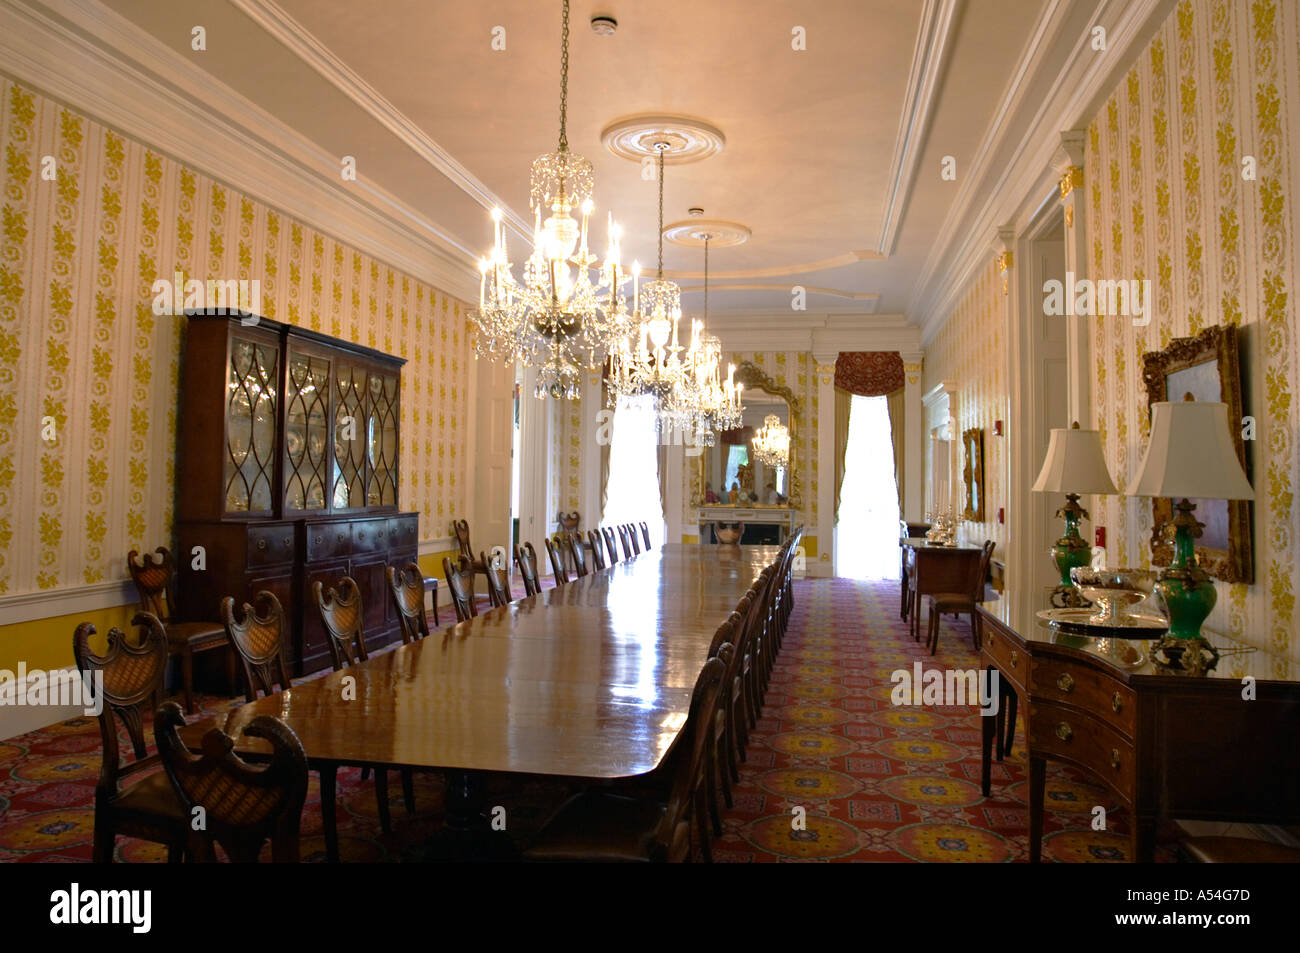 ILLINOIS Springfield Interior of Executive Mansion governors home     ILLINOIS Springfield Interior of Executive Mansion governors home dining  room long table